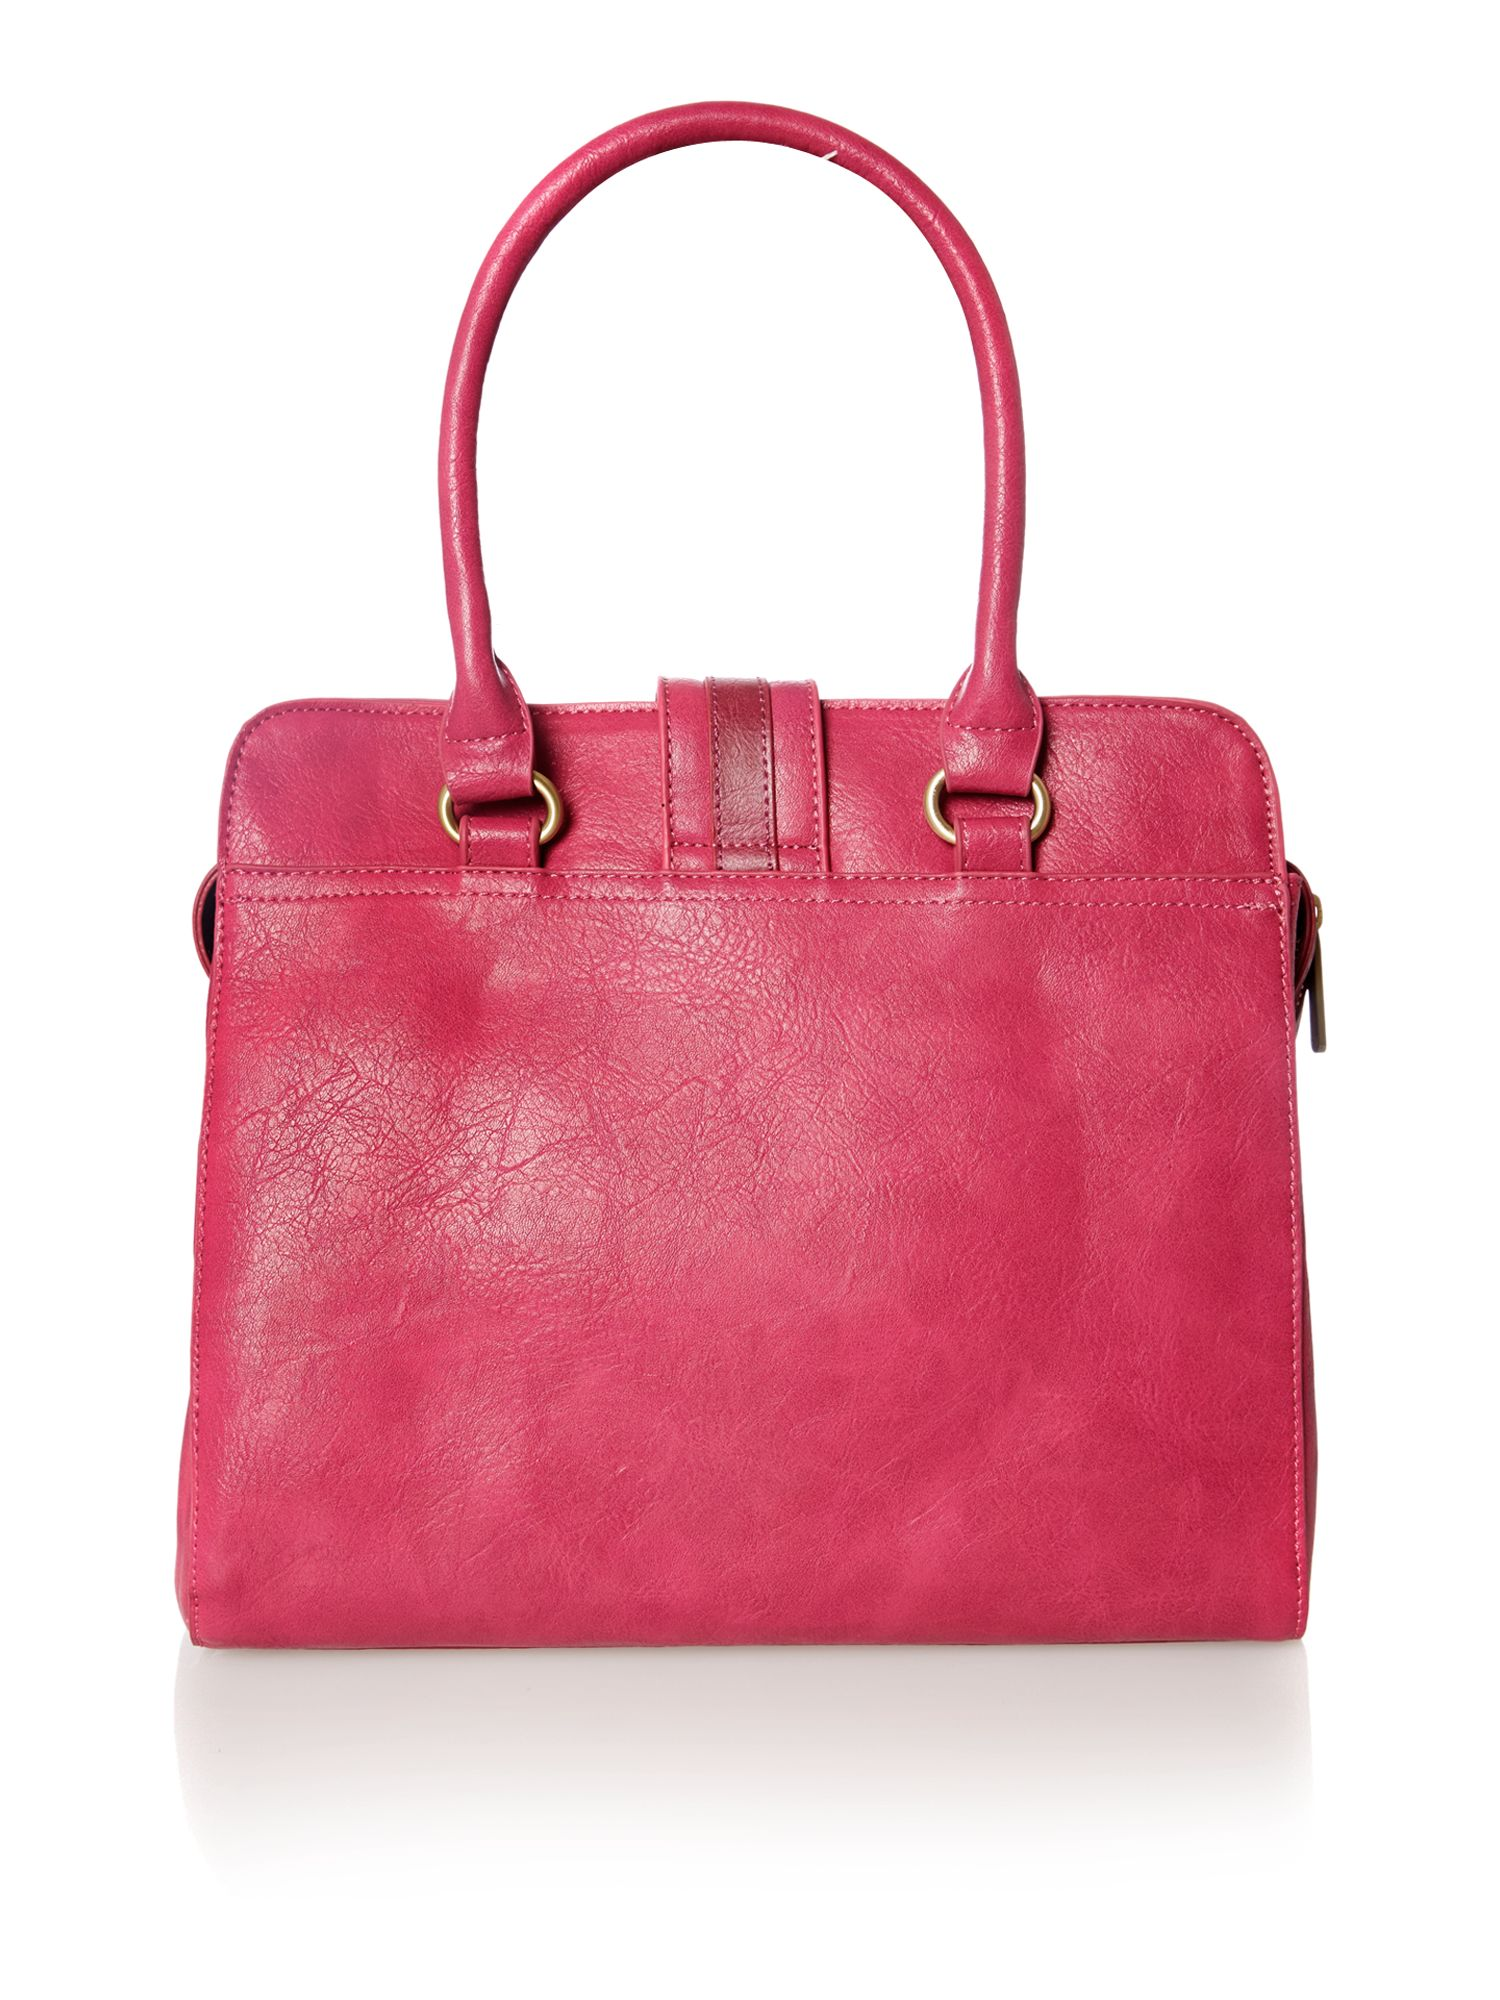 Laine pink large tote bag